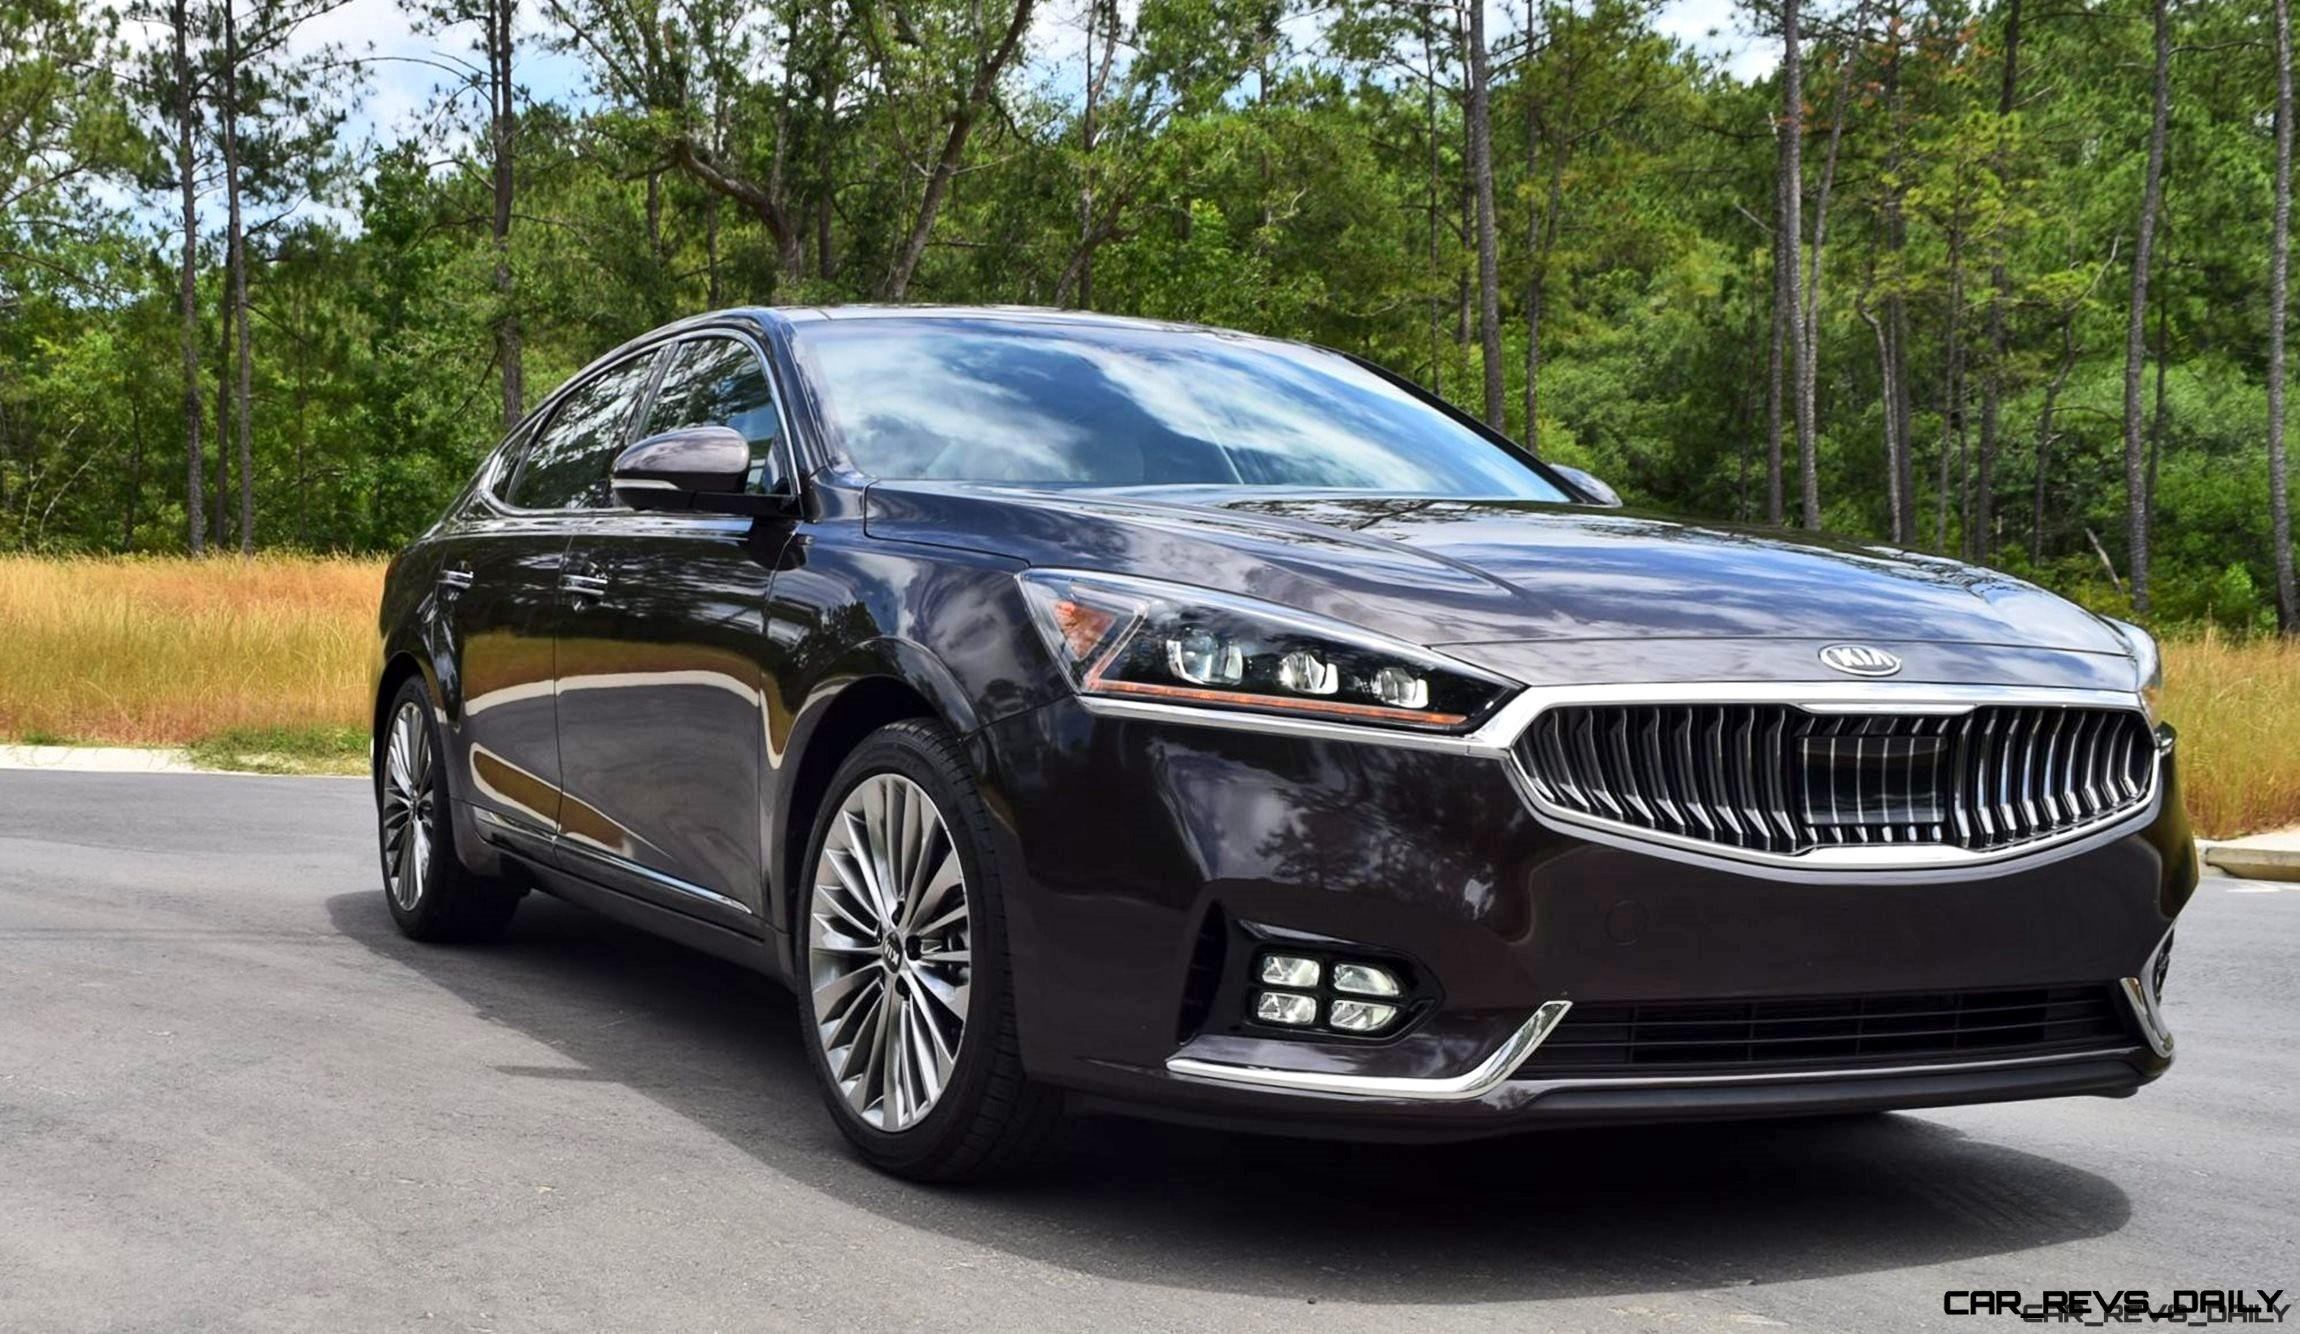 2017 KIA Cadenza Limited - Road Test Review + 2 Videos